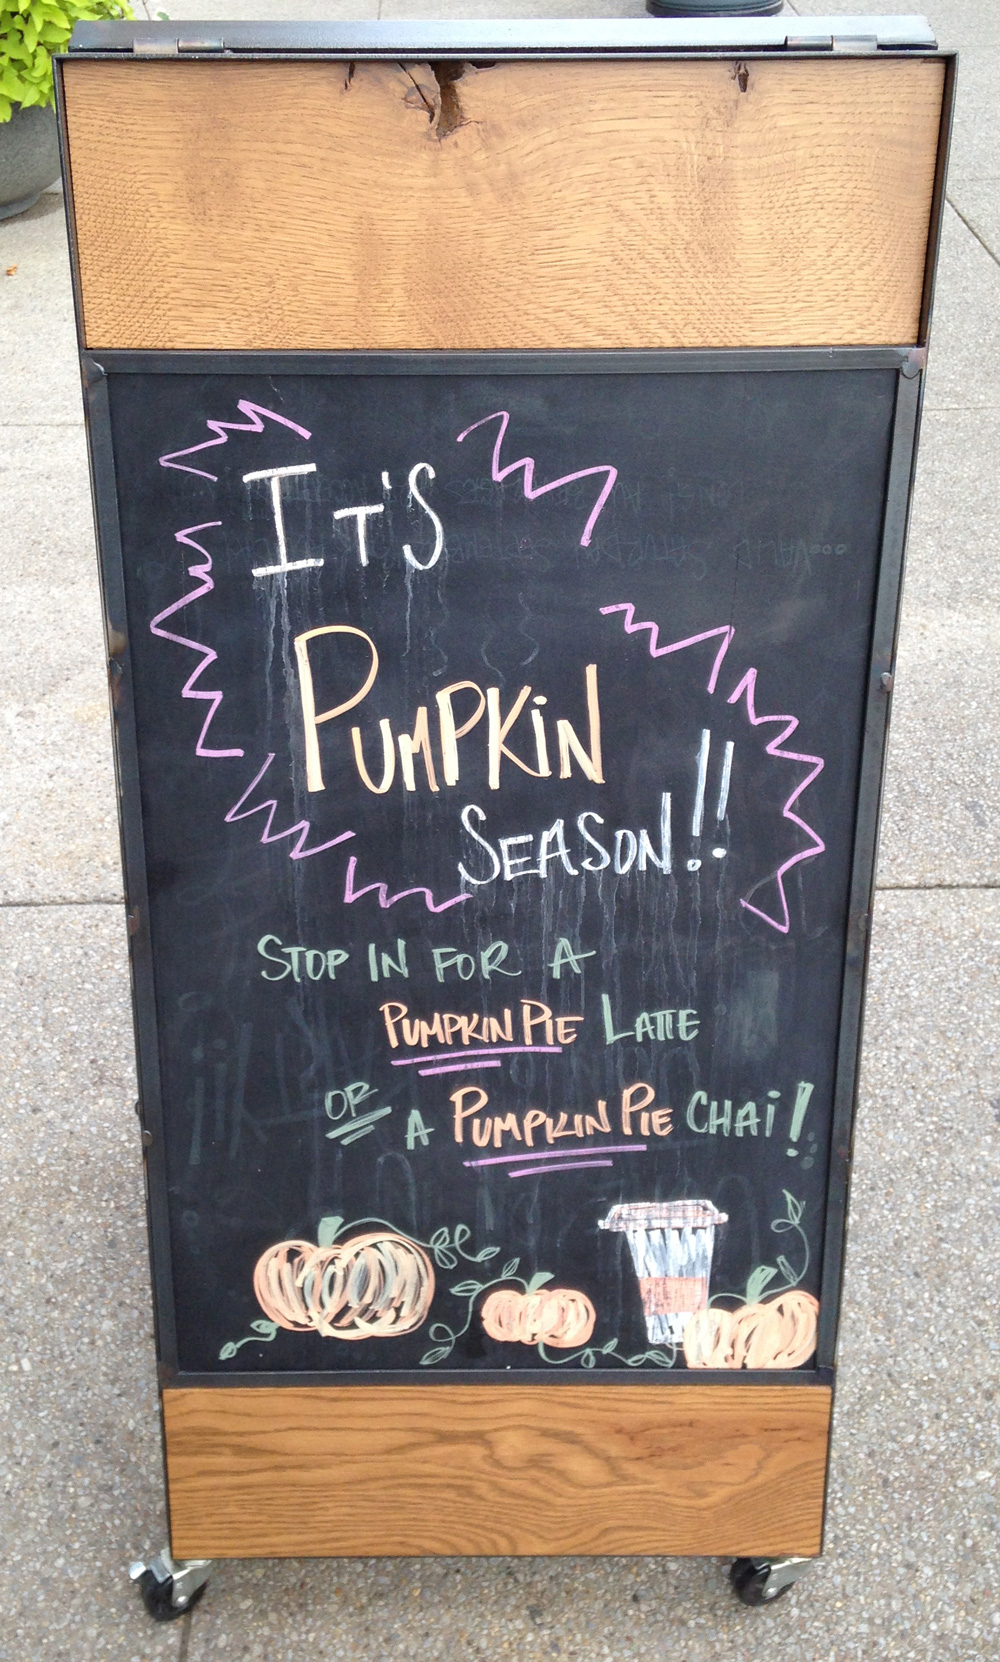 Peet's presents pumpkin season